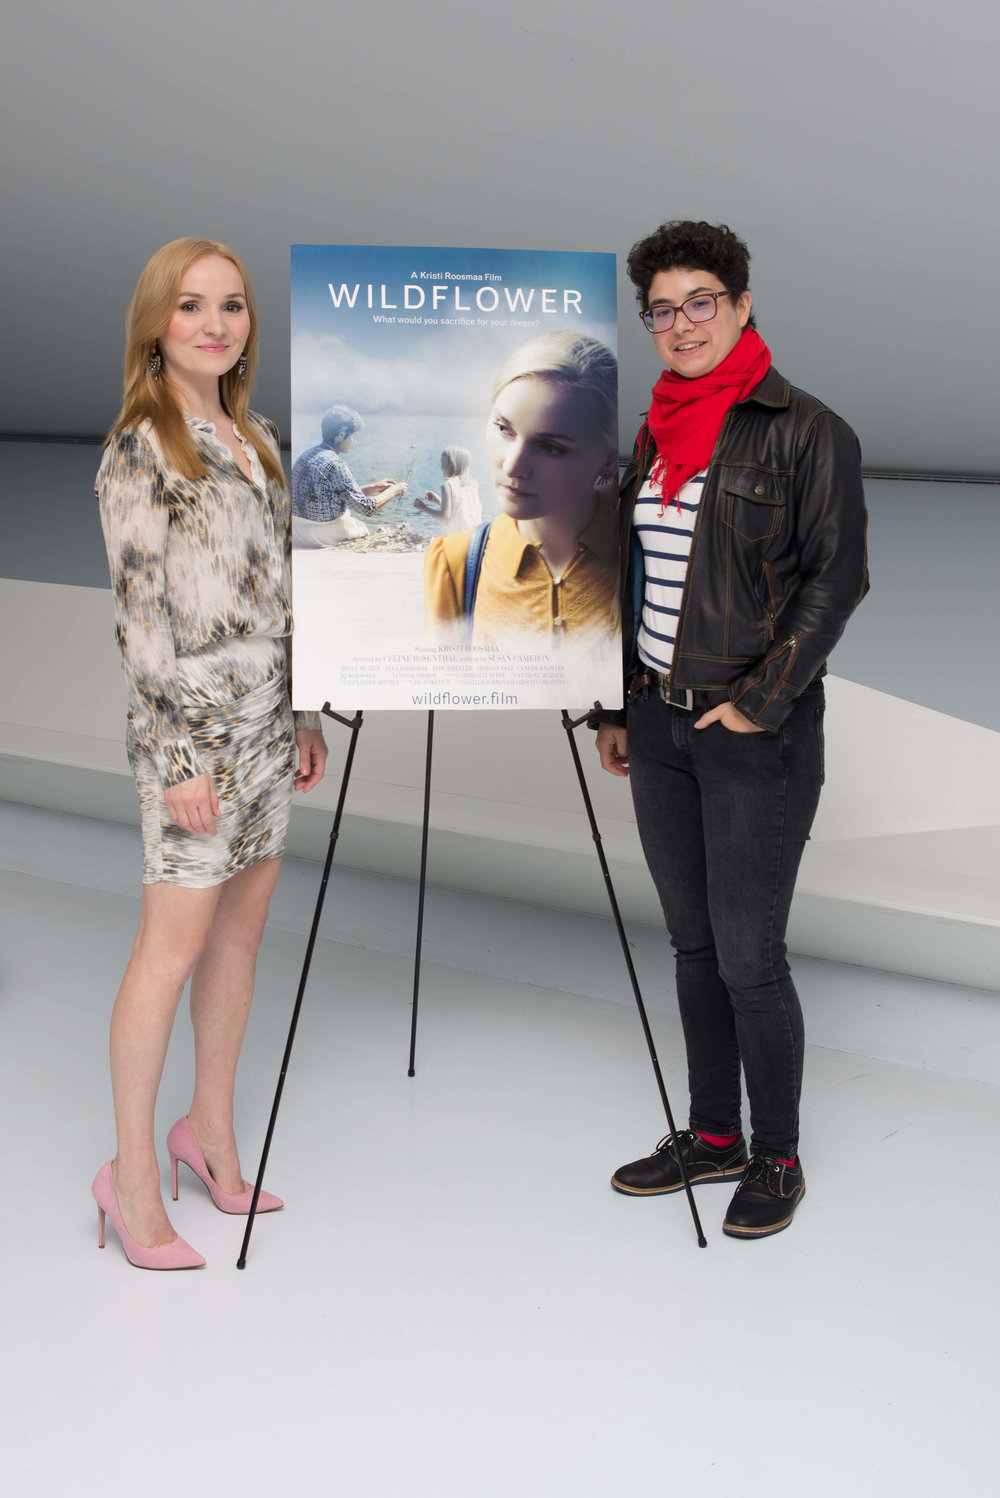 Wildflower is captured by rising multi-cultural director of photography Charlotte Dupré.